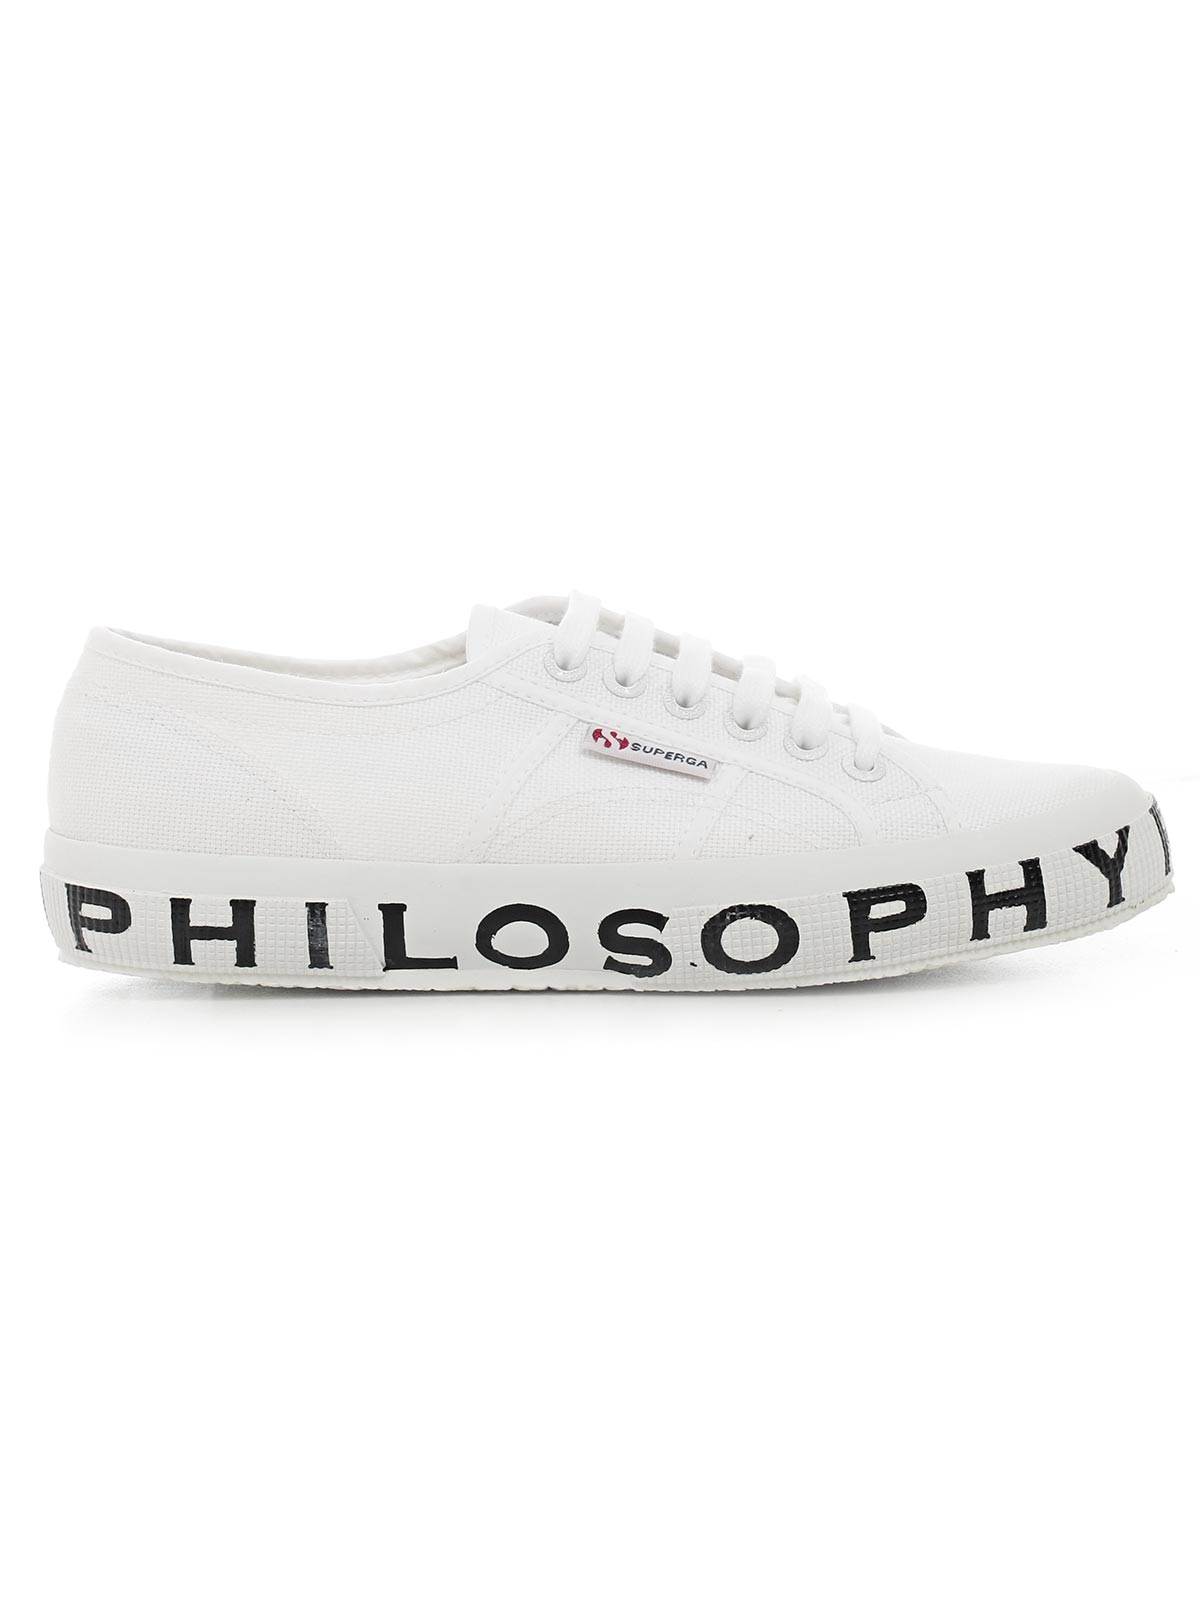 Picture of Philosophy Footwear